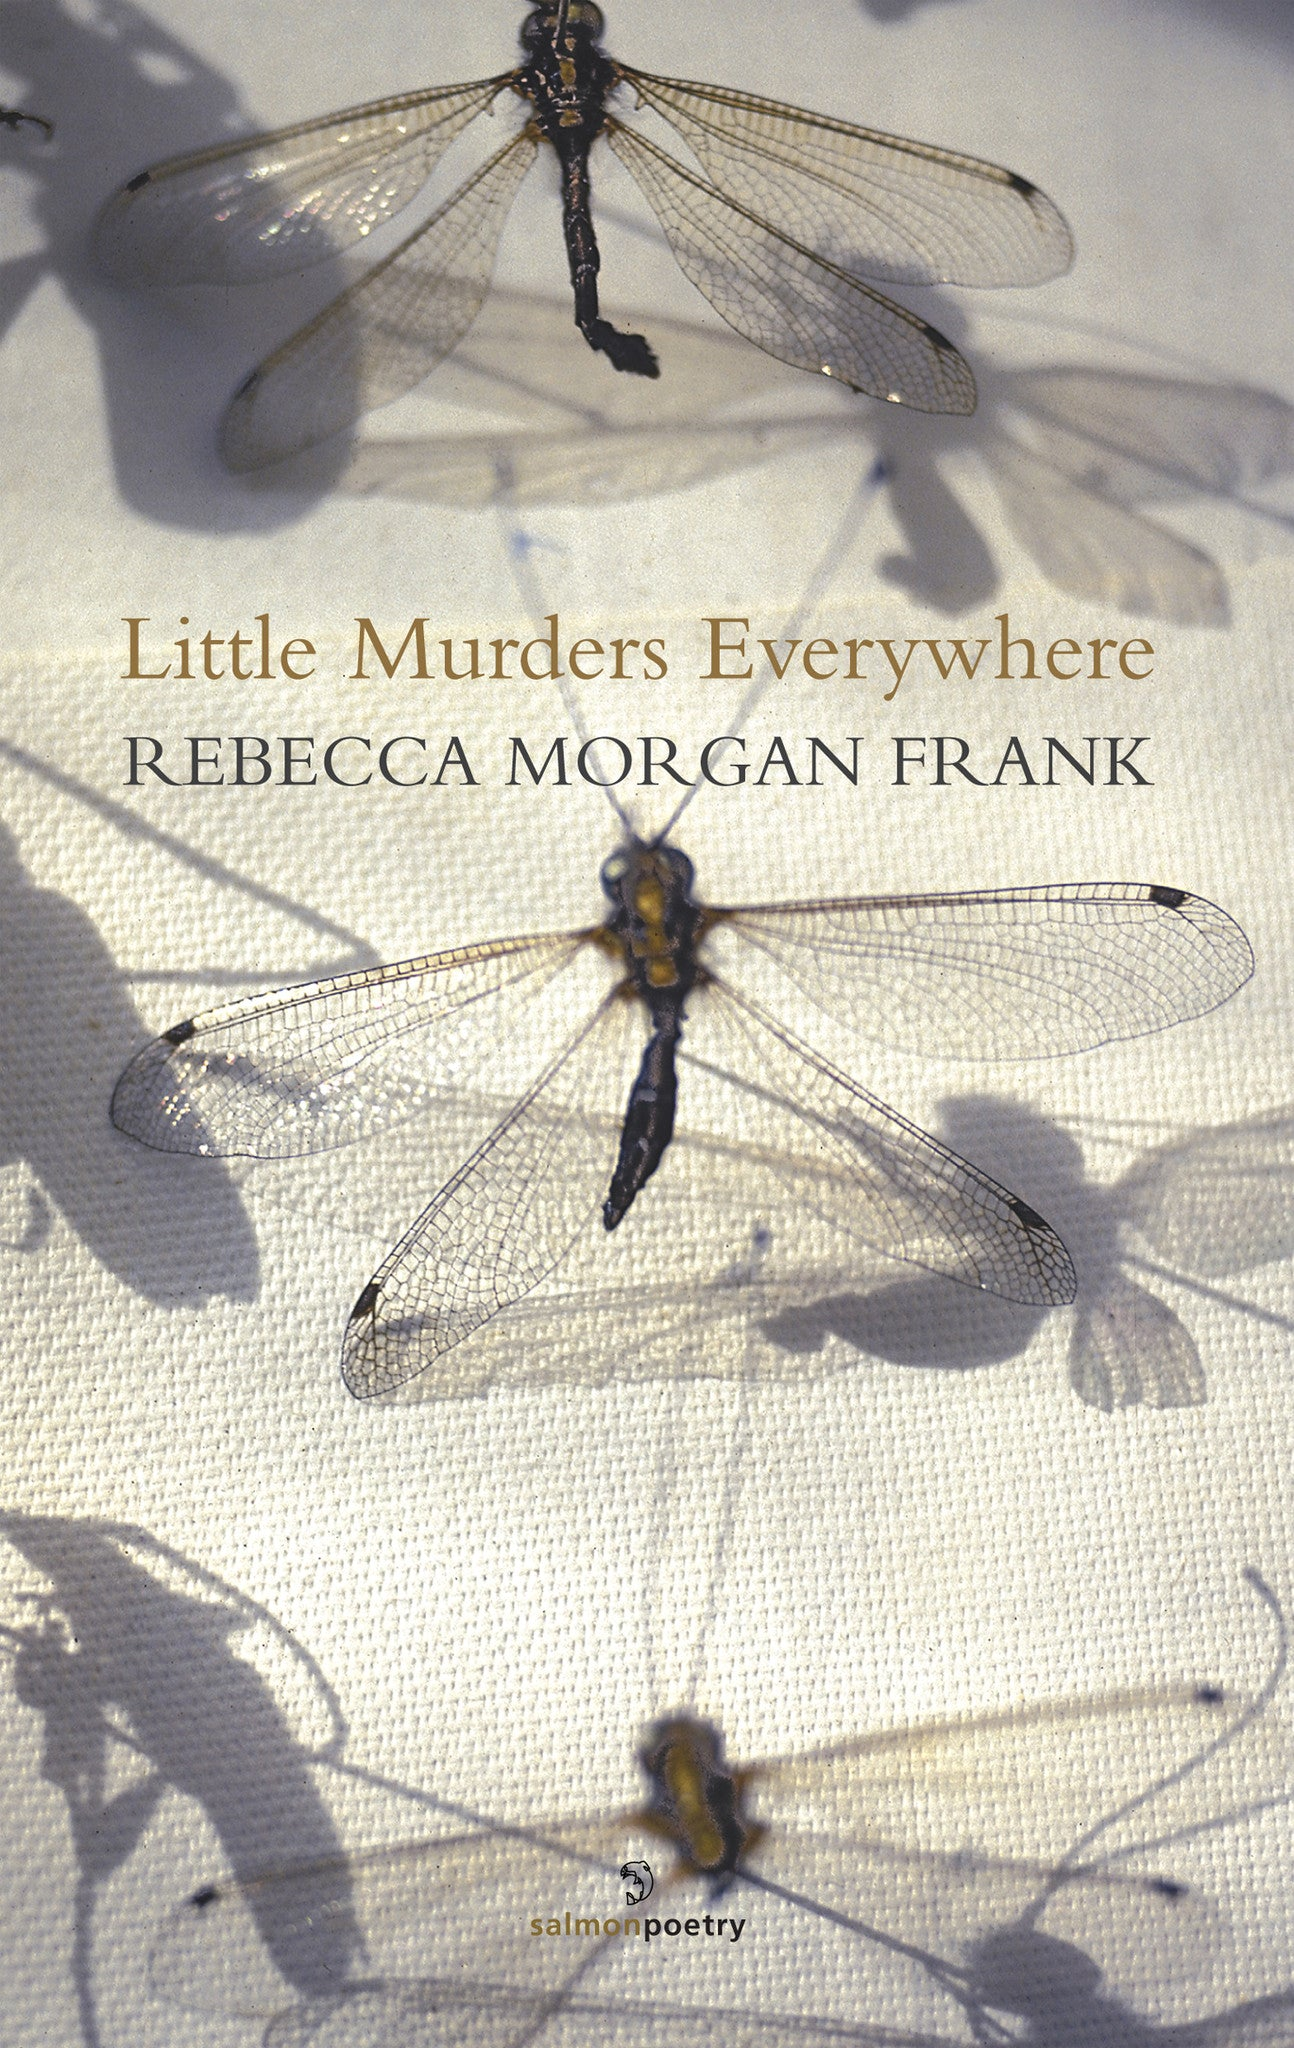 Little Murders Everywhere